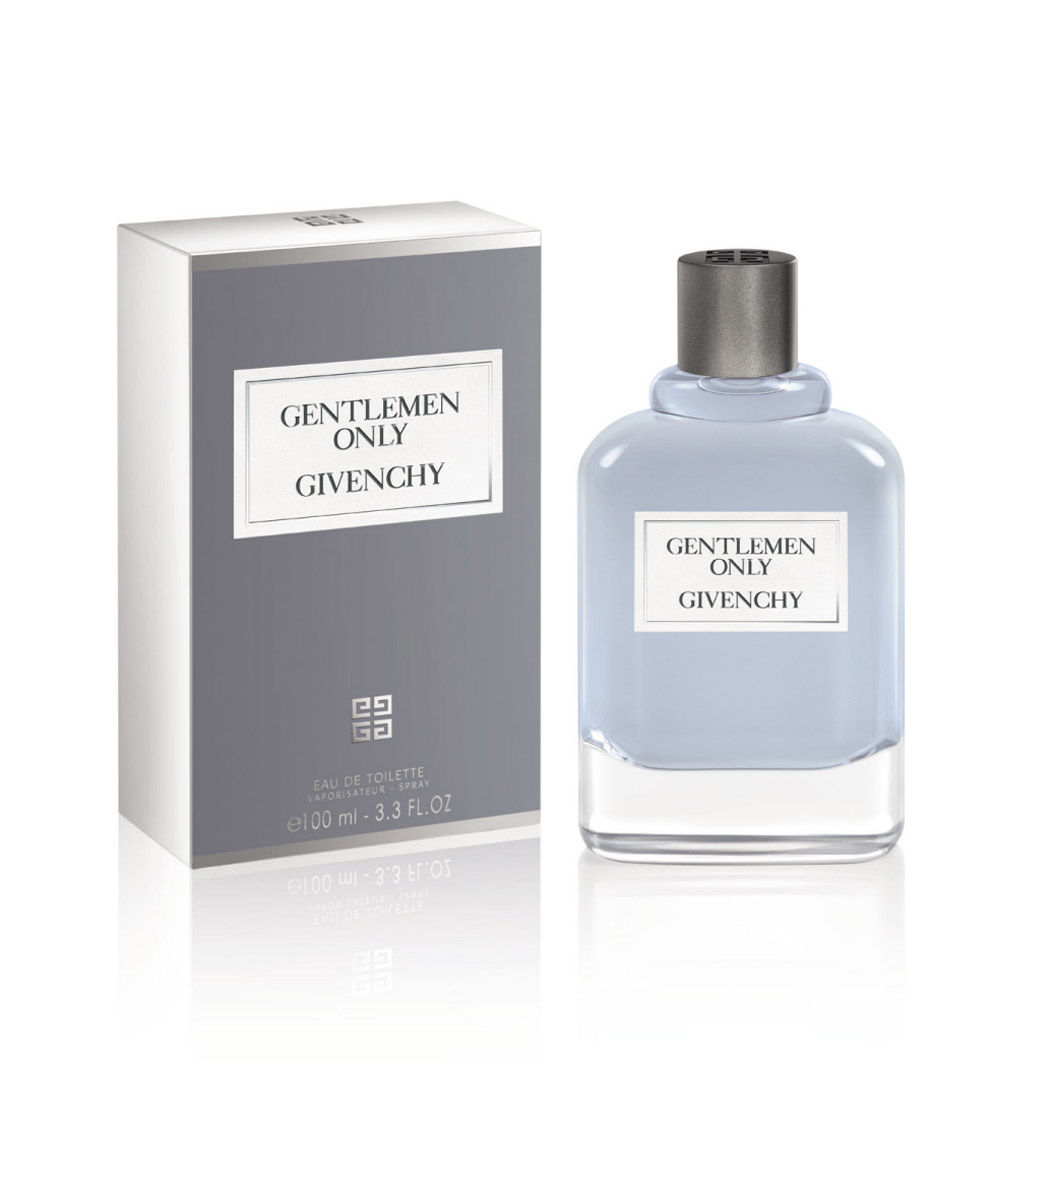 Туалетная вода Givenchy Givenchy Gentlemen Only 50ml